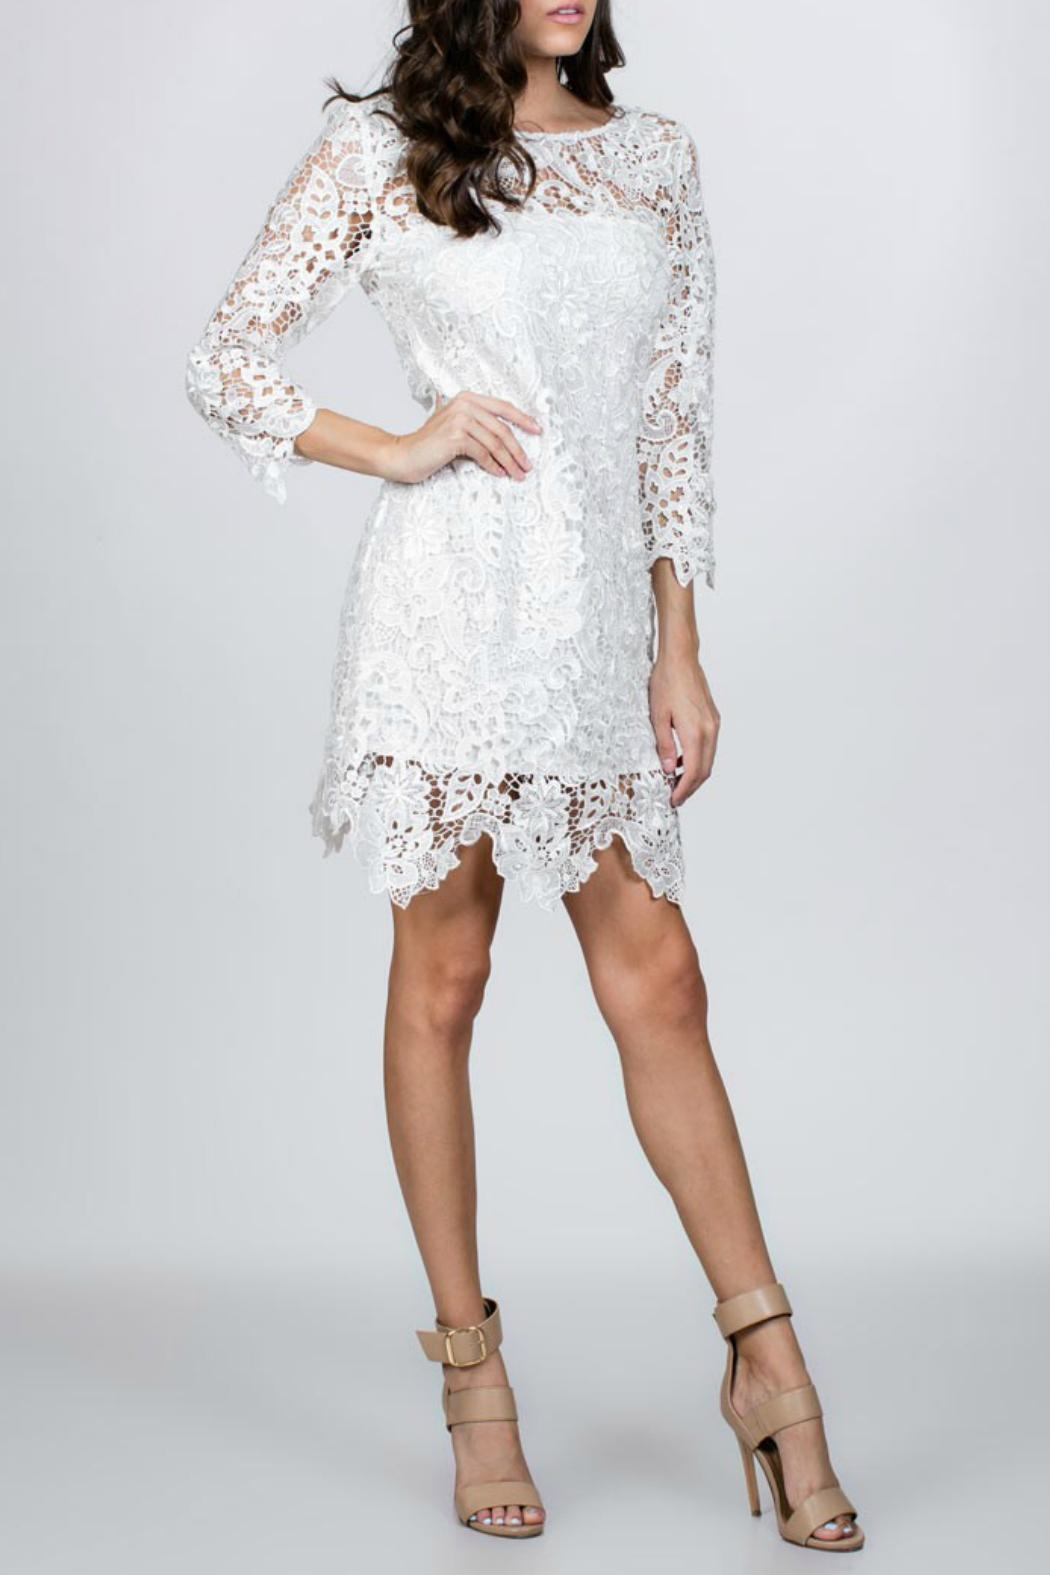 Ark & Co. White Lace Dress - Front Cropped Image